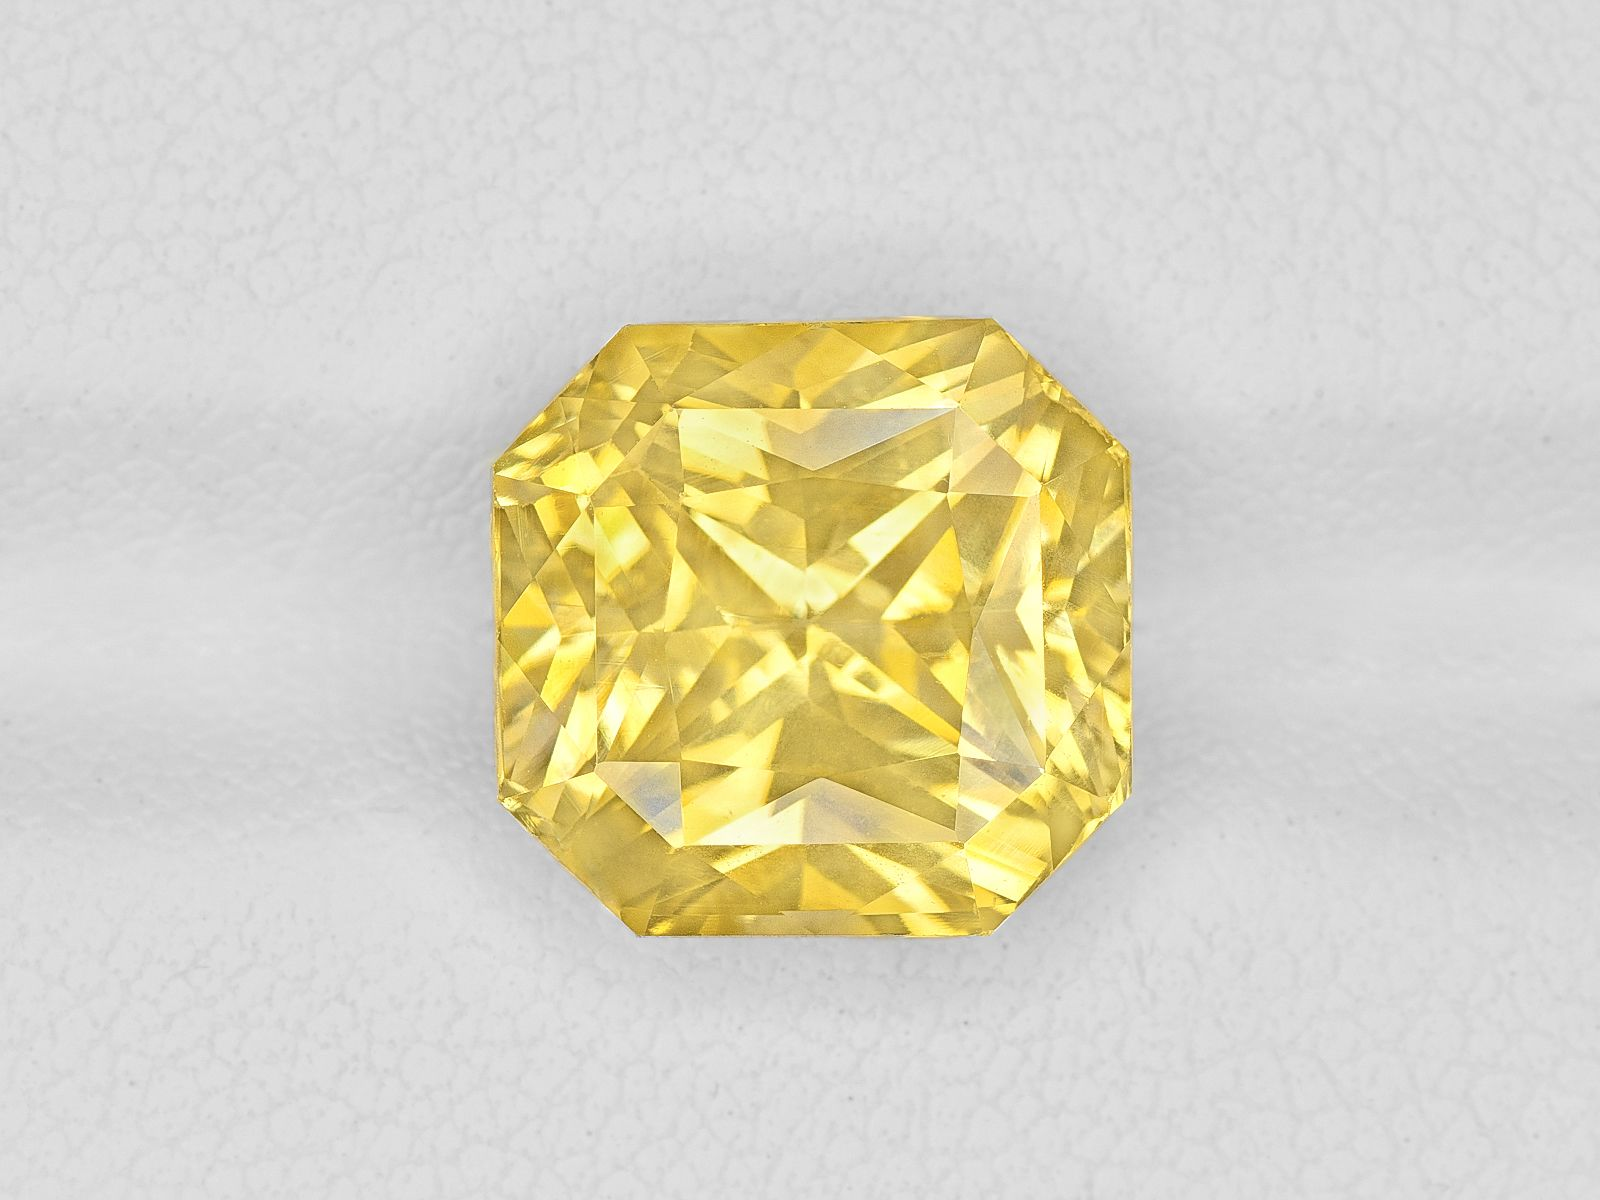 Yellow Sapphire 8 11ct Mined In Sri Lanka Certified By Gia Yellow Sapphire Sapphire Gem Rock Auctions